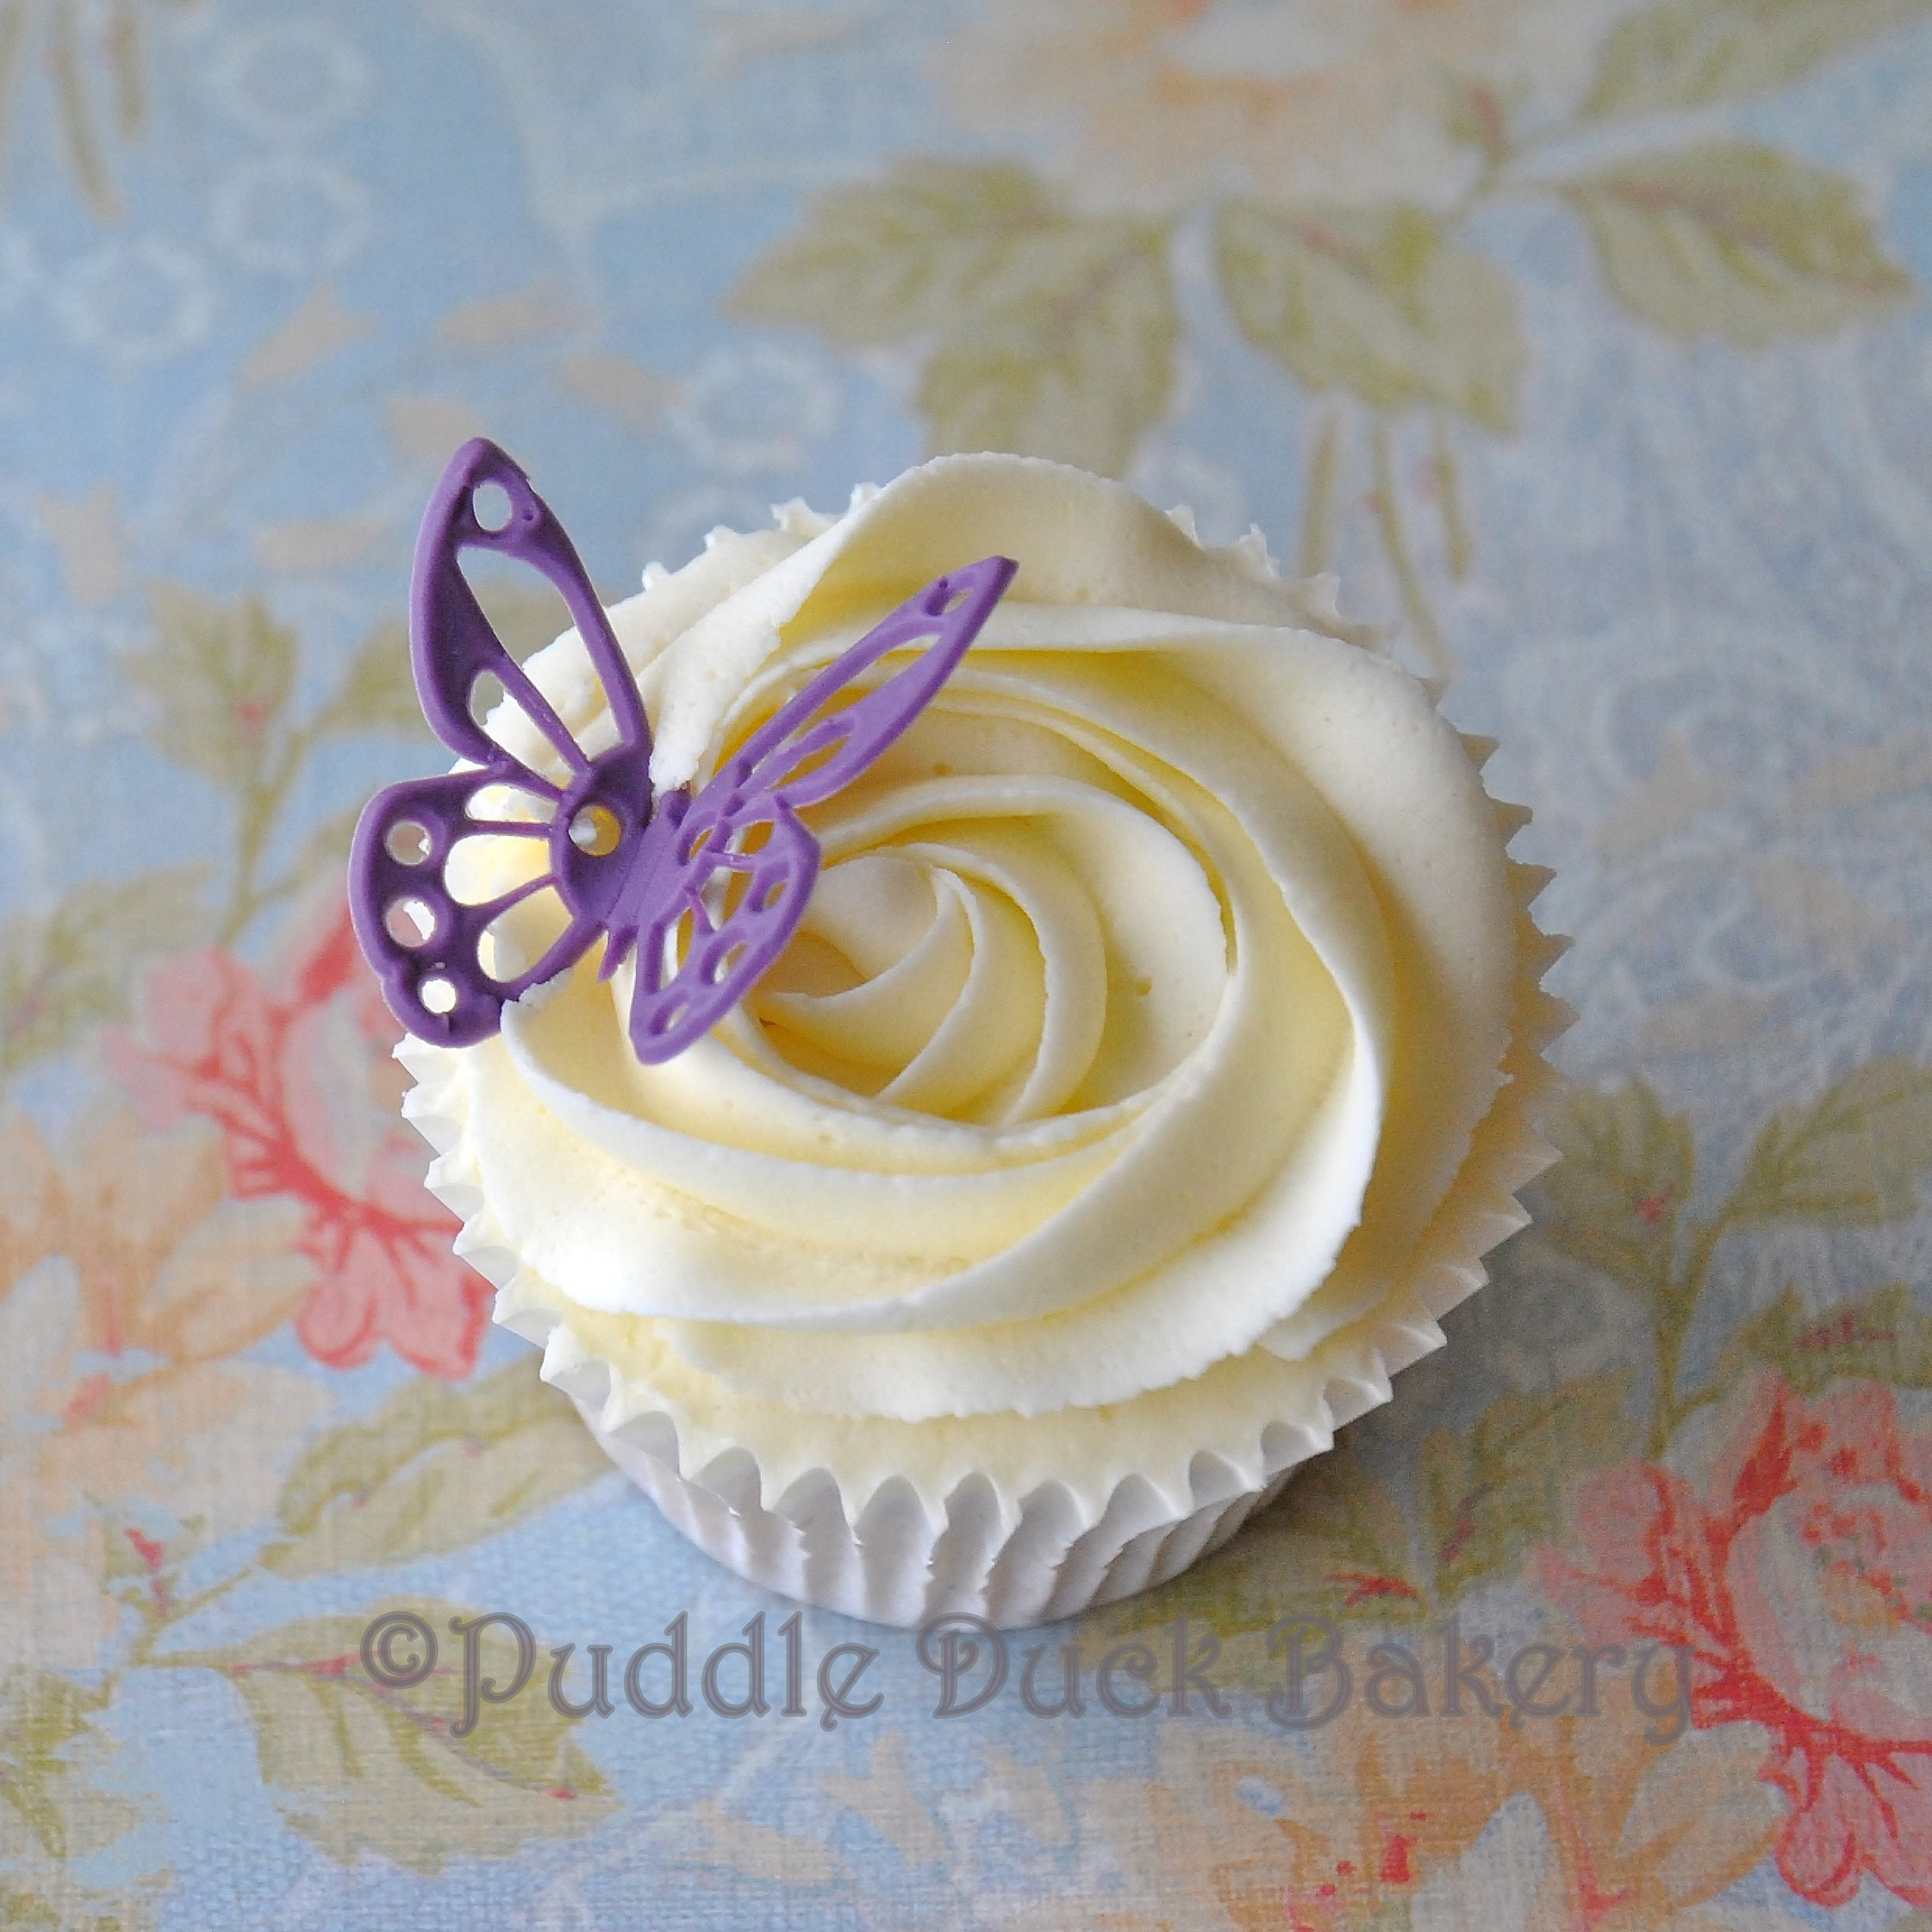 A purple butterfly on a cupcake